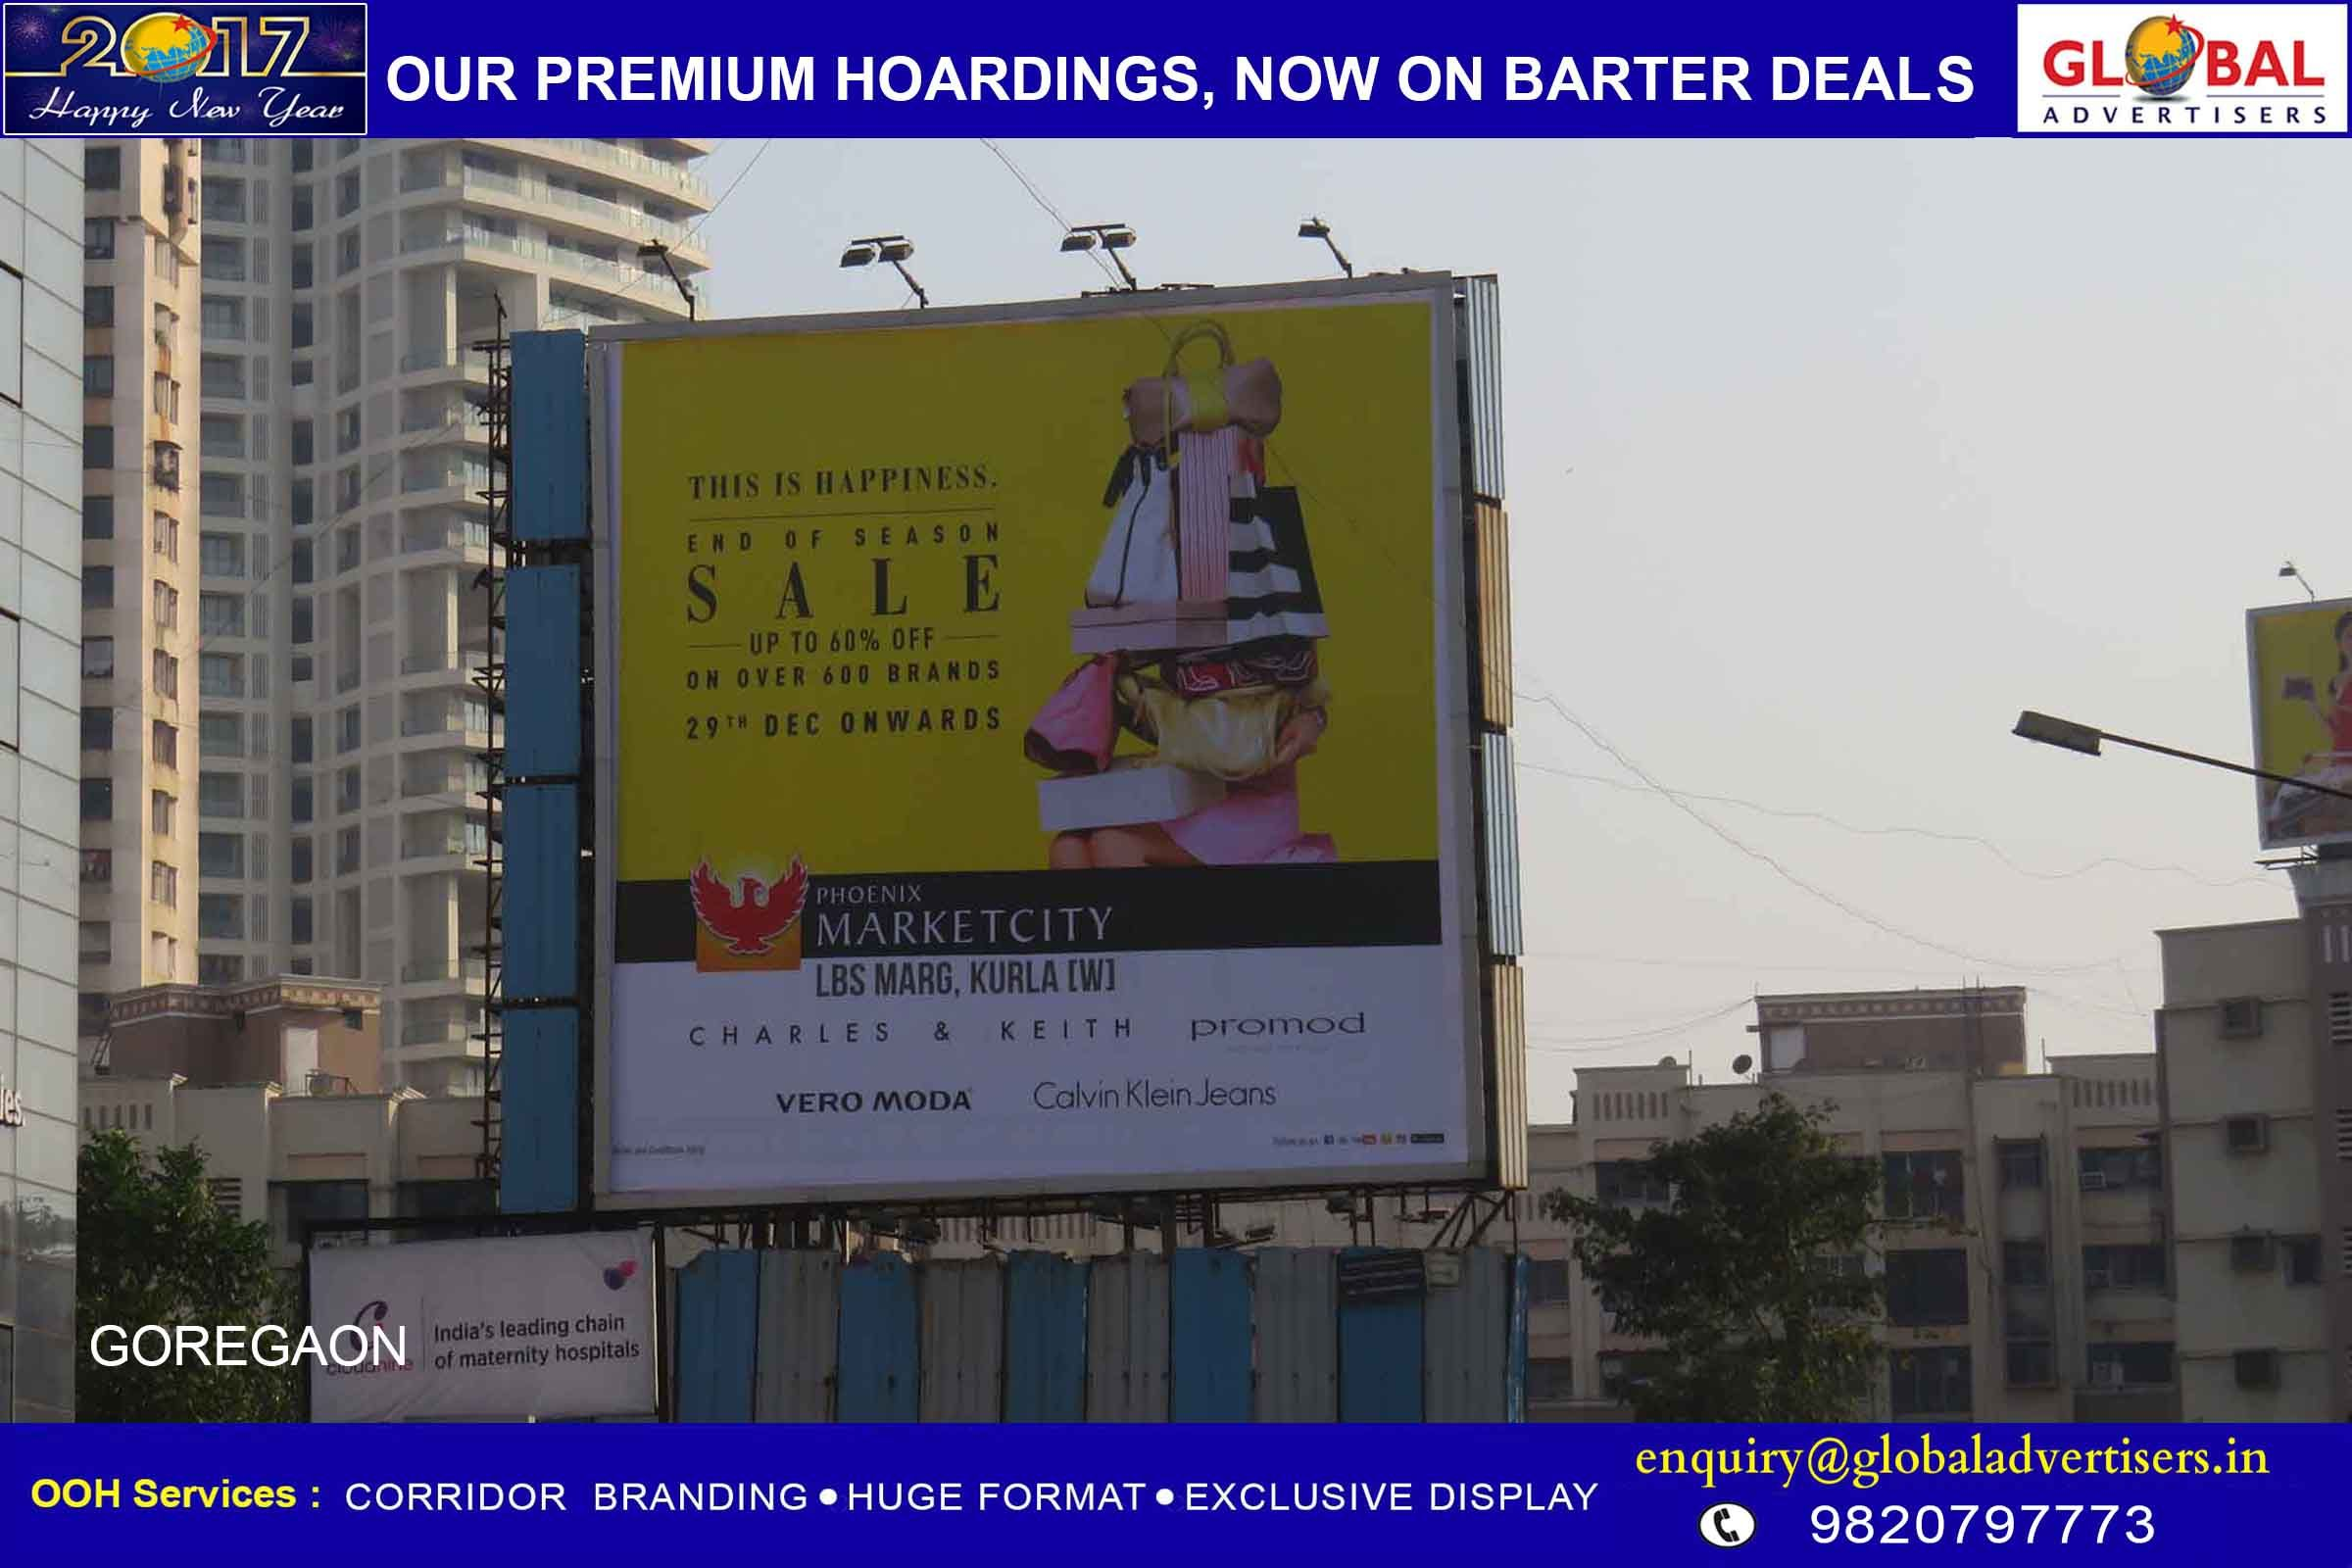 Global Advertisers Executes Outdoor Campaign For Marketcitykurla Ooh Outdoorpromotion Advertising Hoardings Outdoor Advertising Advertising Branding